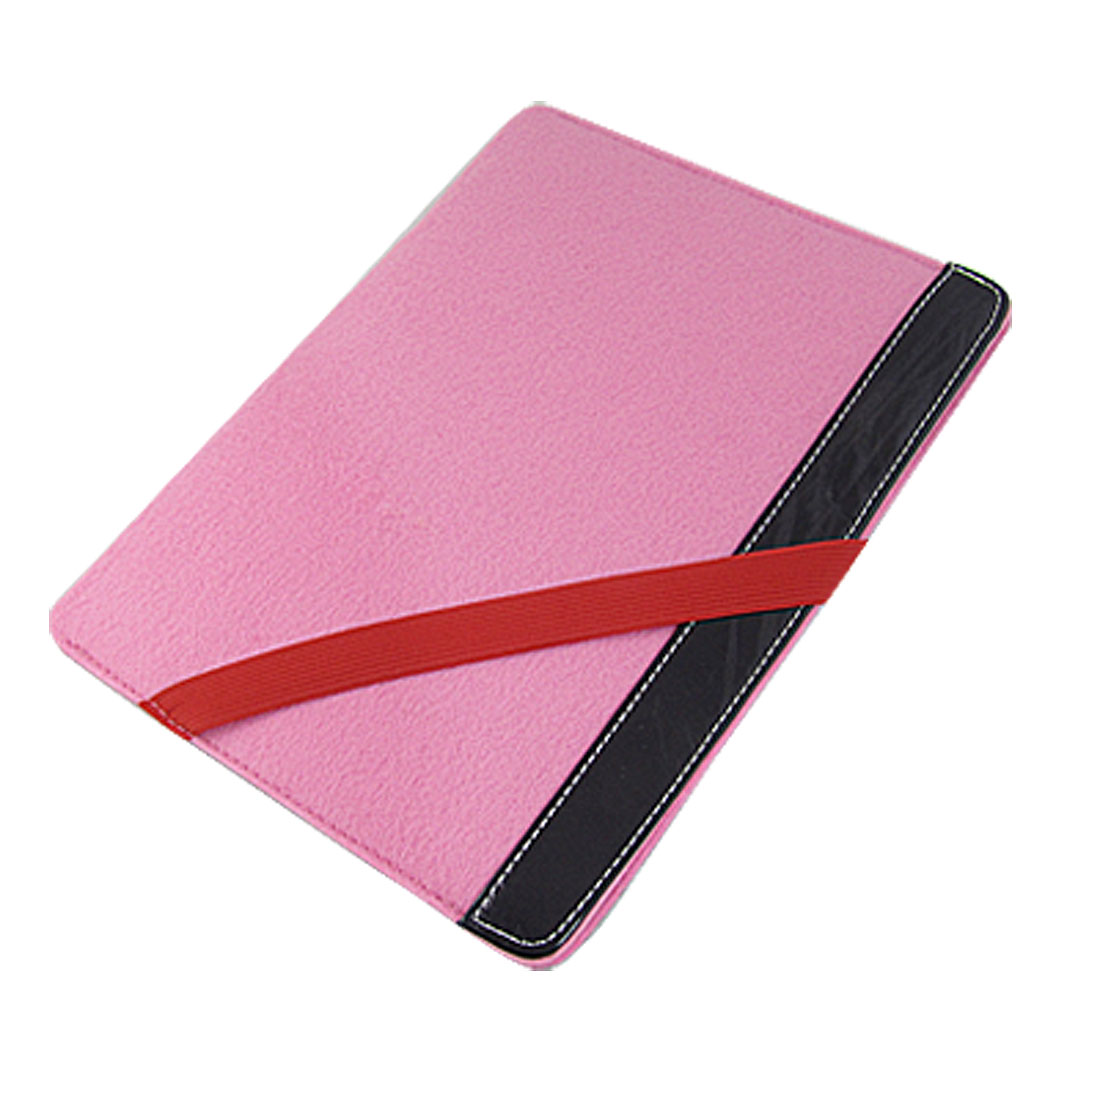 Red Elastic Band Pink Protective Sleeve Pouch